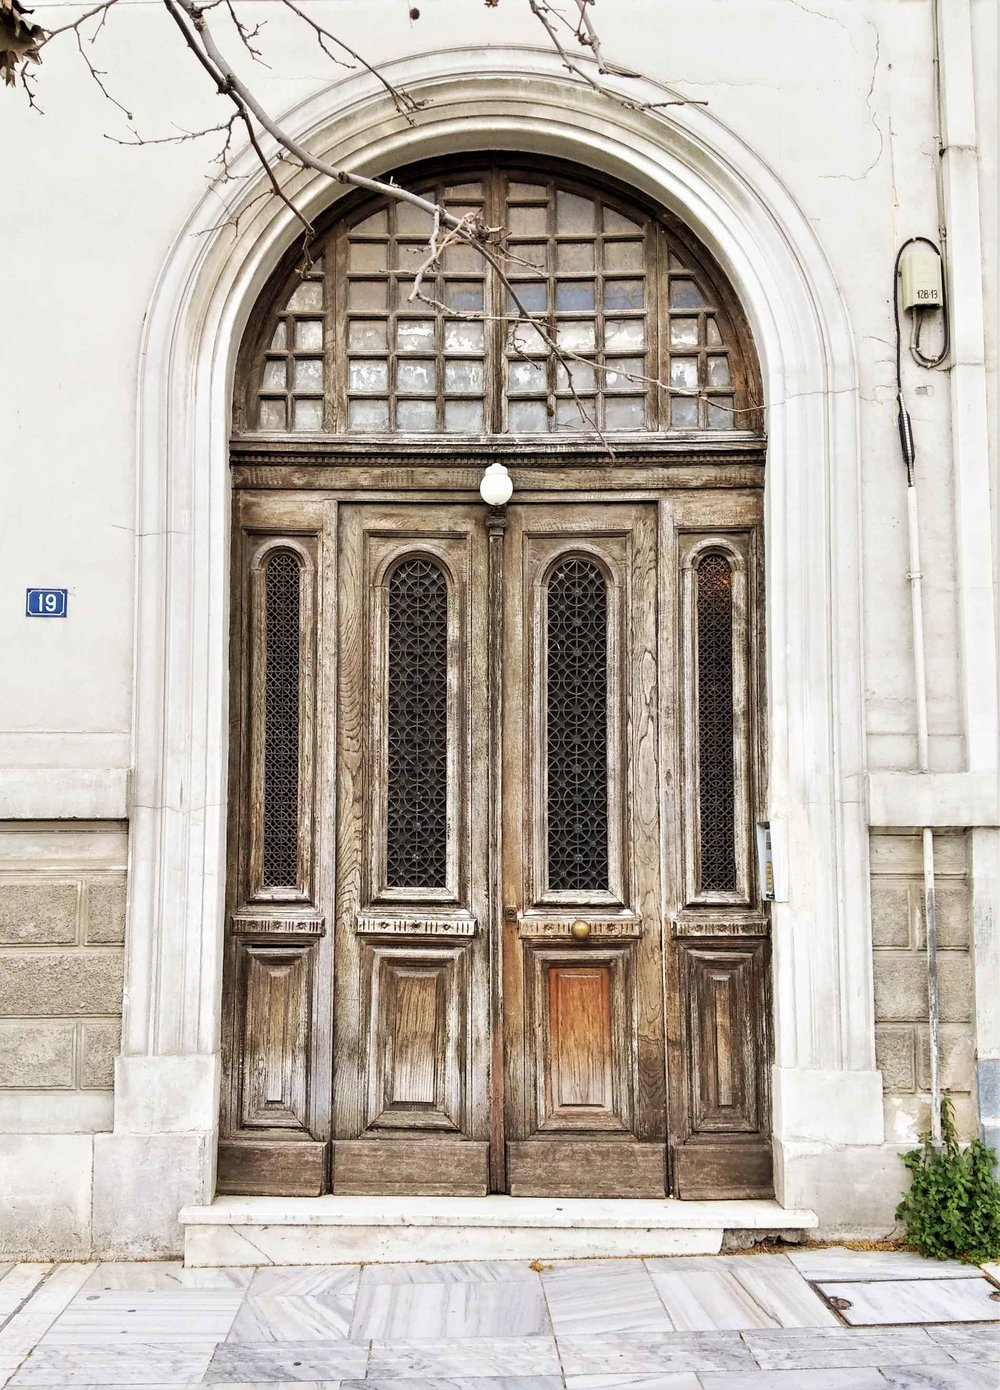 The doors of Plaka are just one of the things photography lovers can capture.